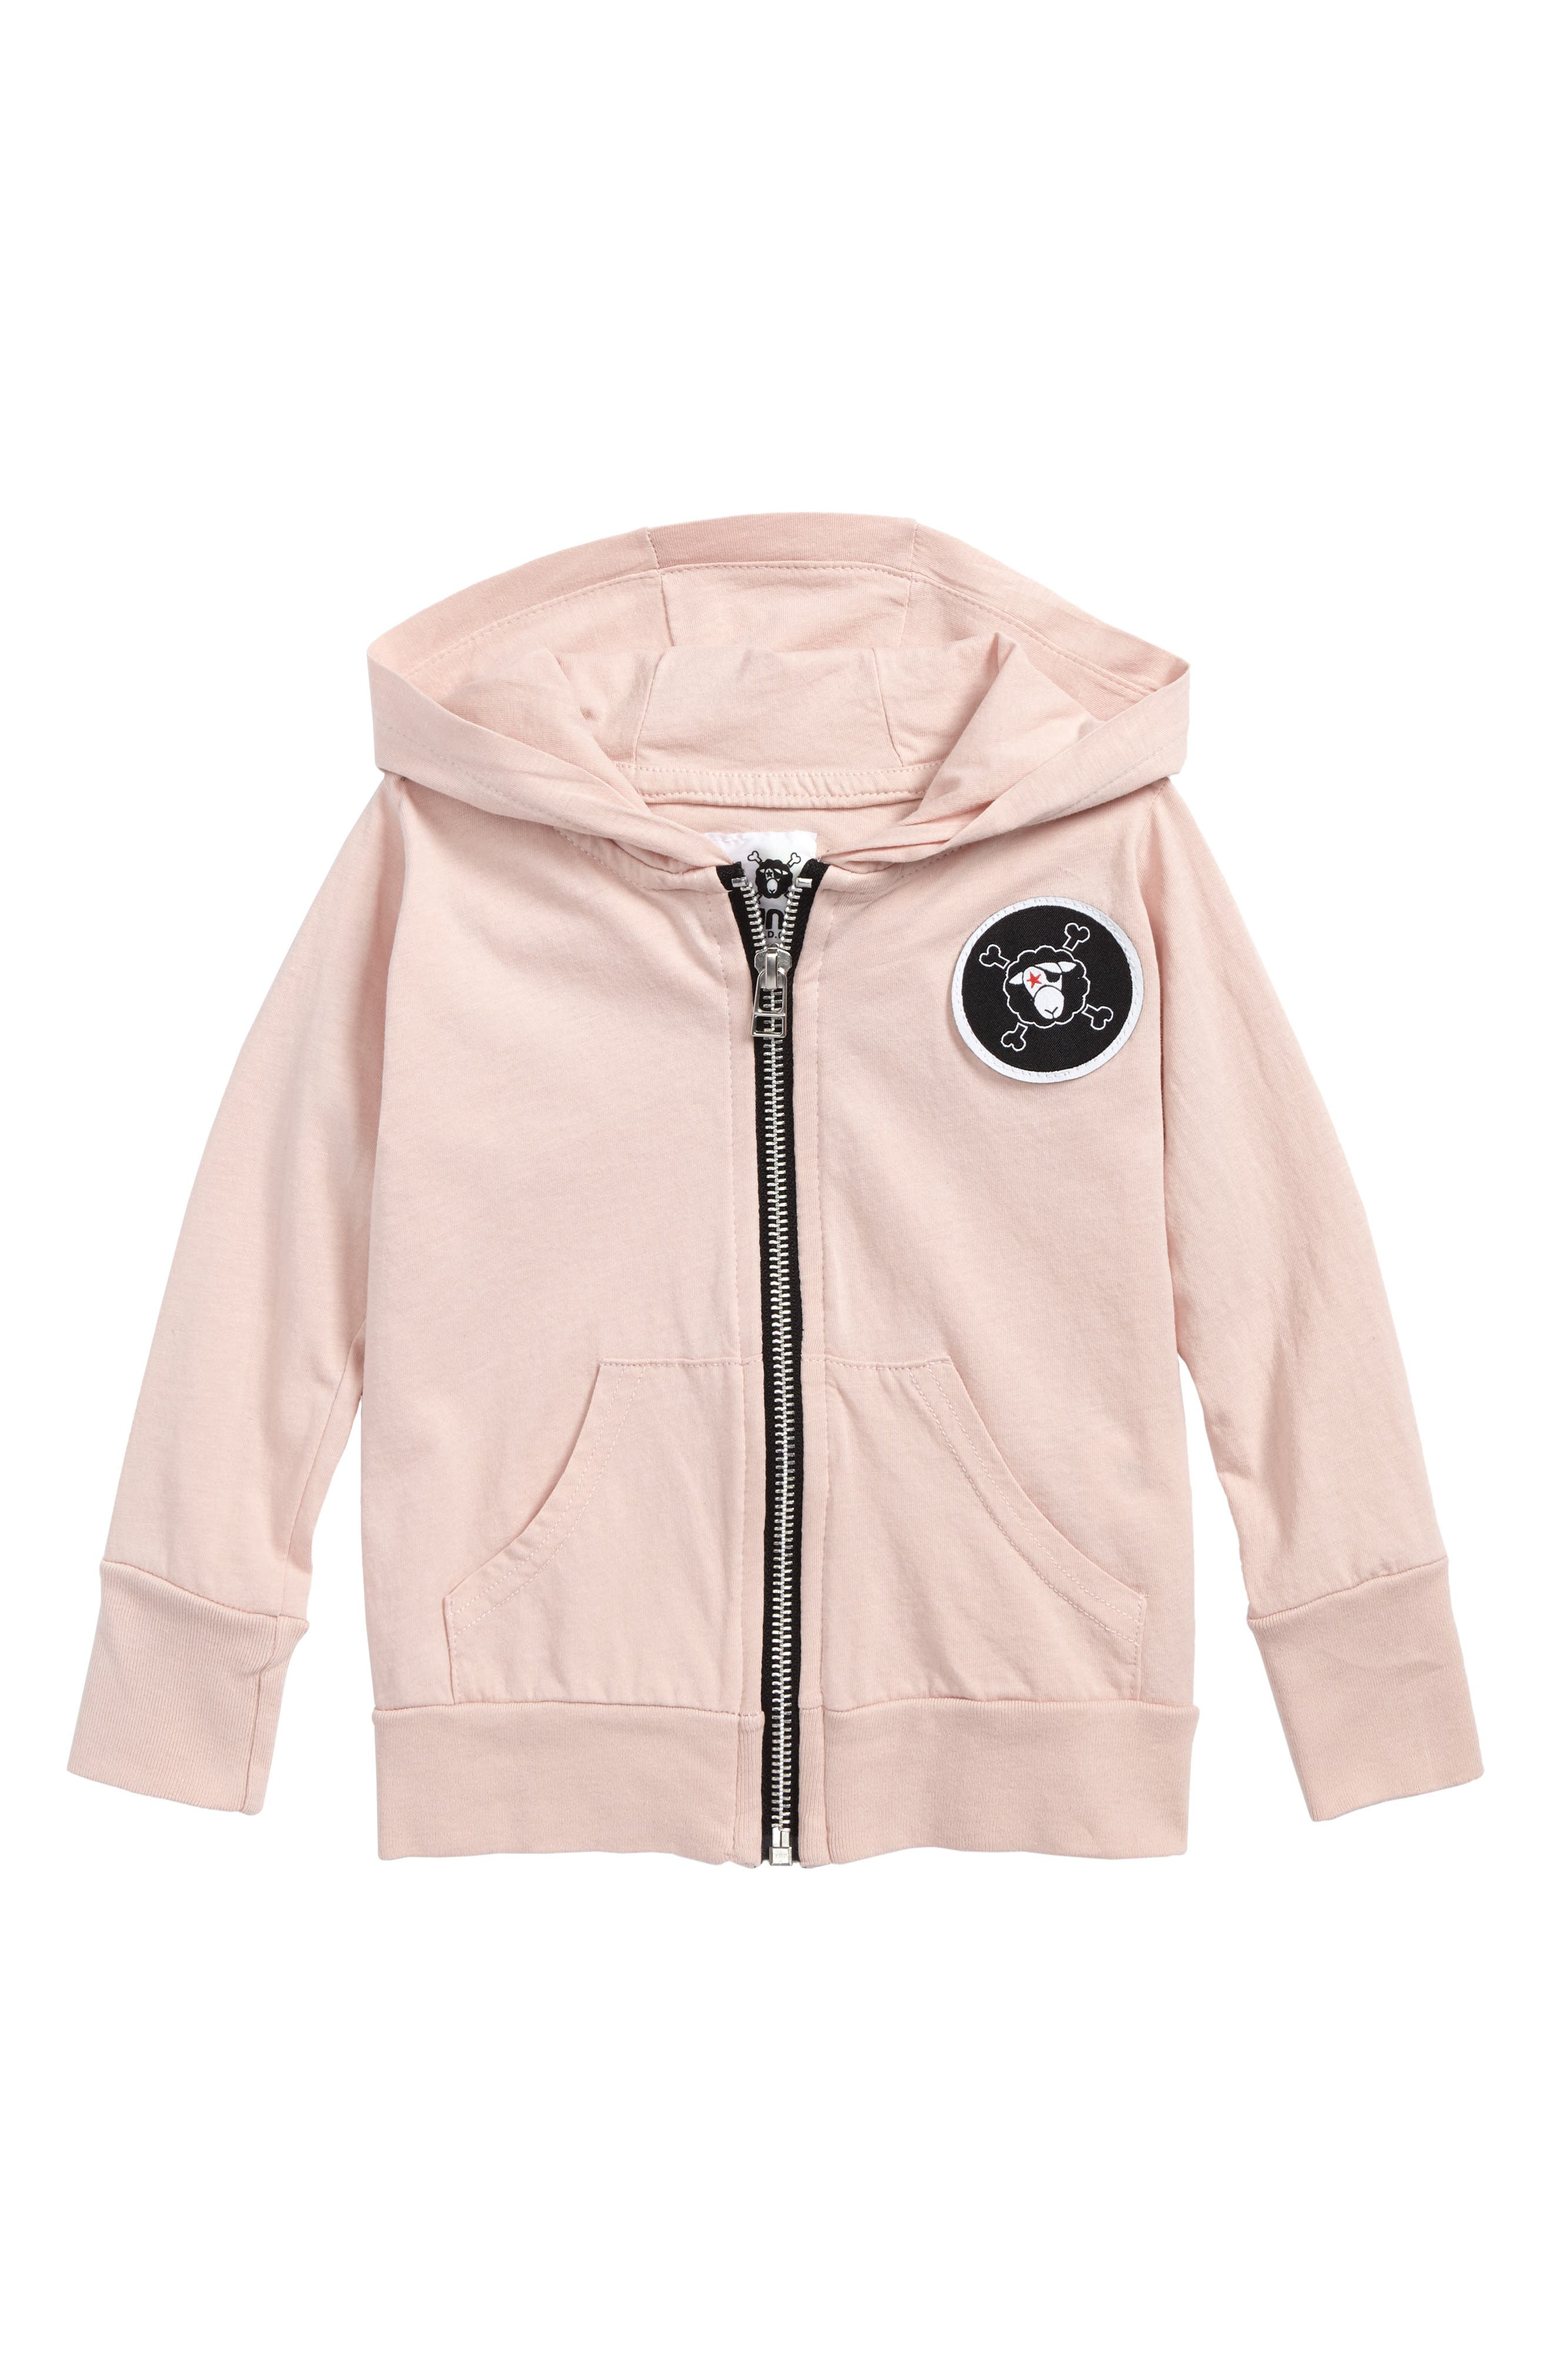 Patch Hoodie,                             Main thumbnail 1, color,                             650